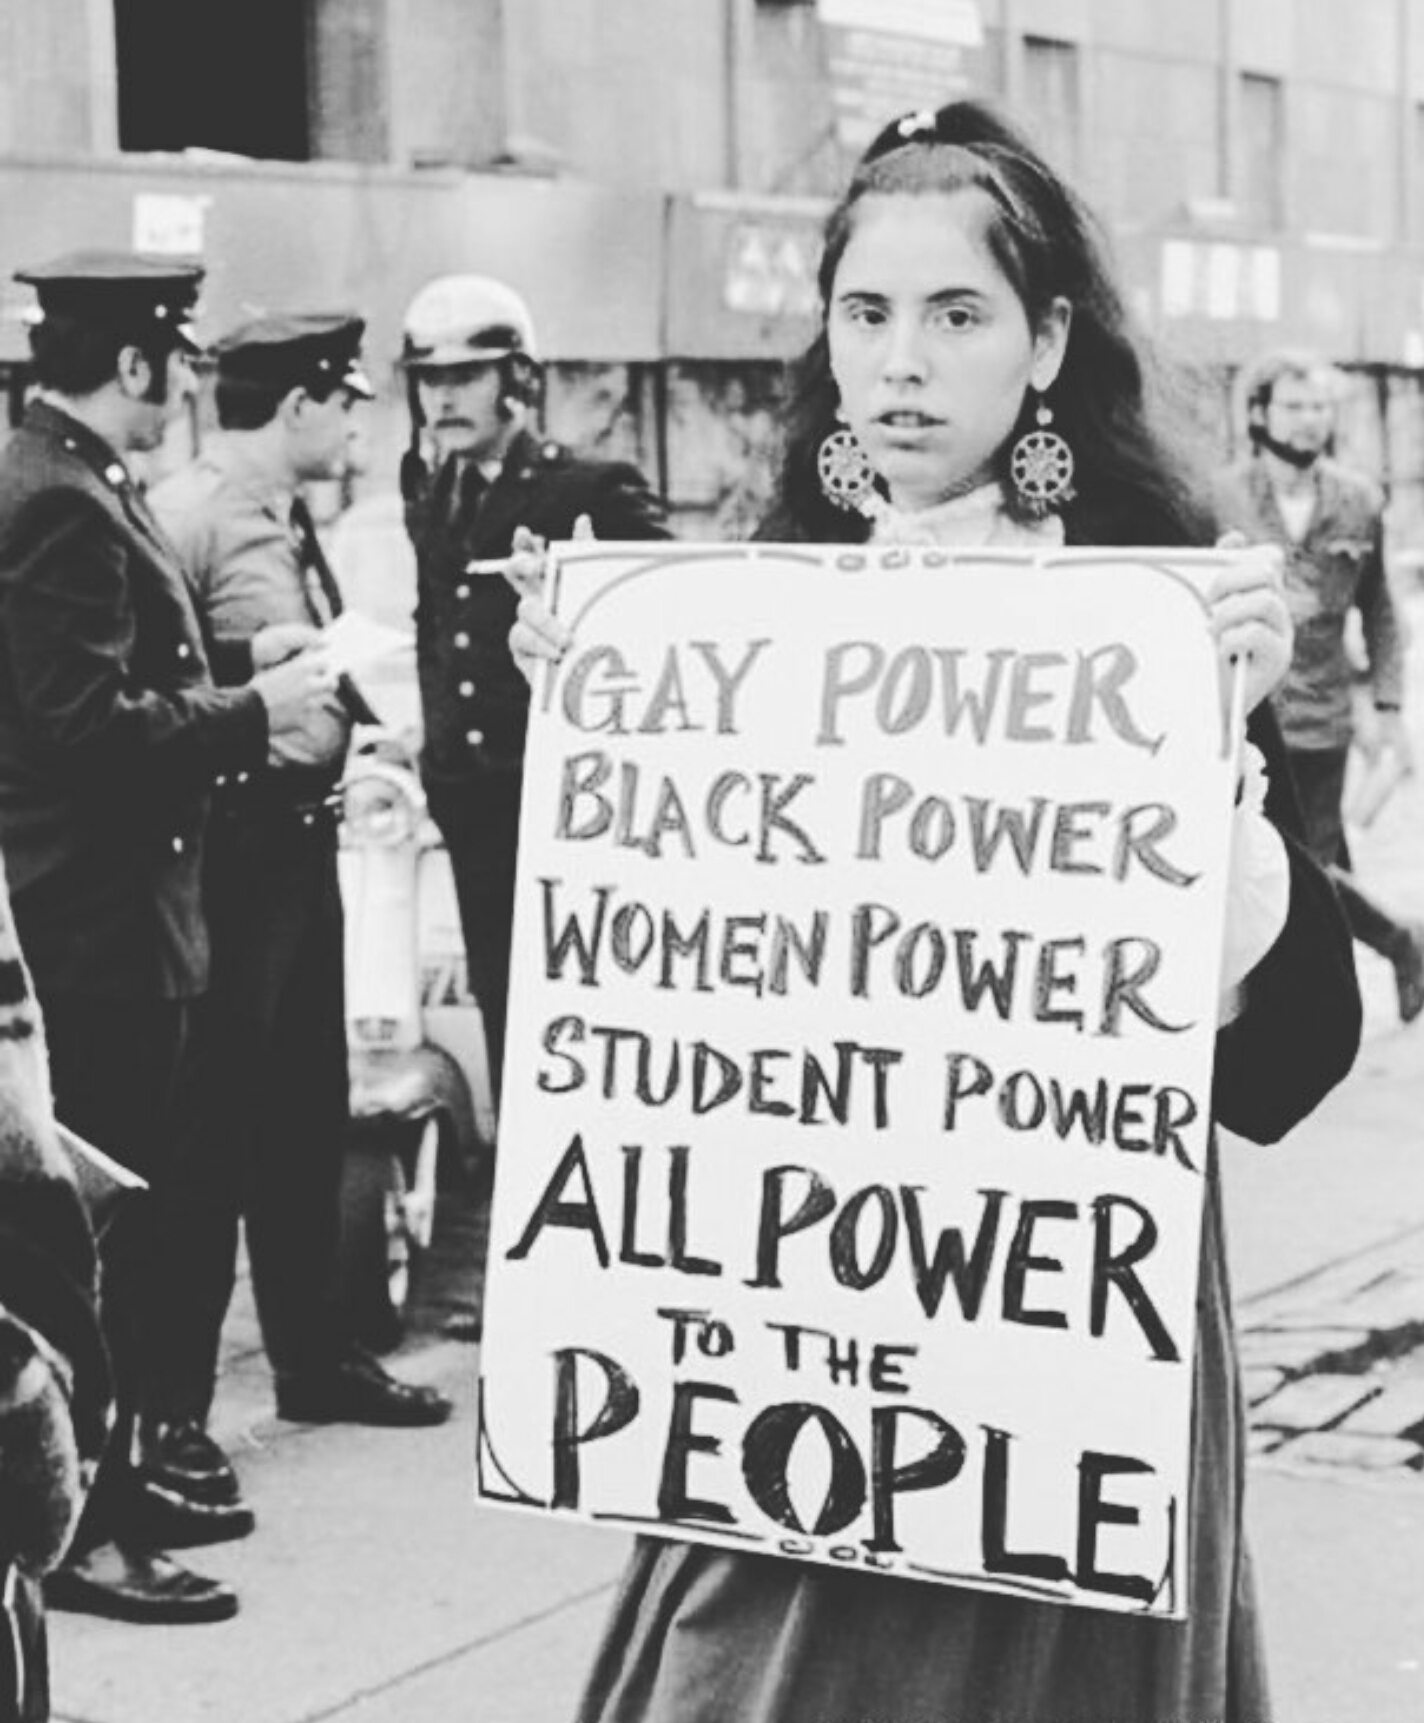 Student protester, 1960s.